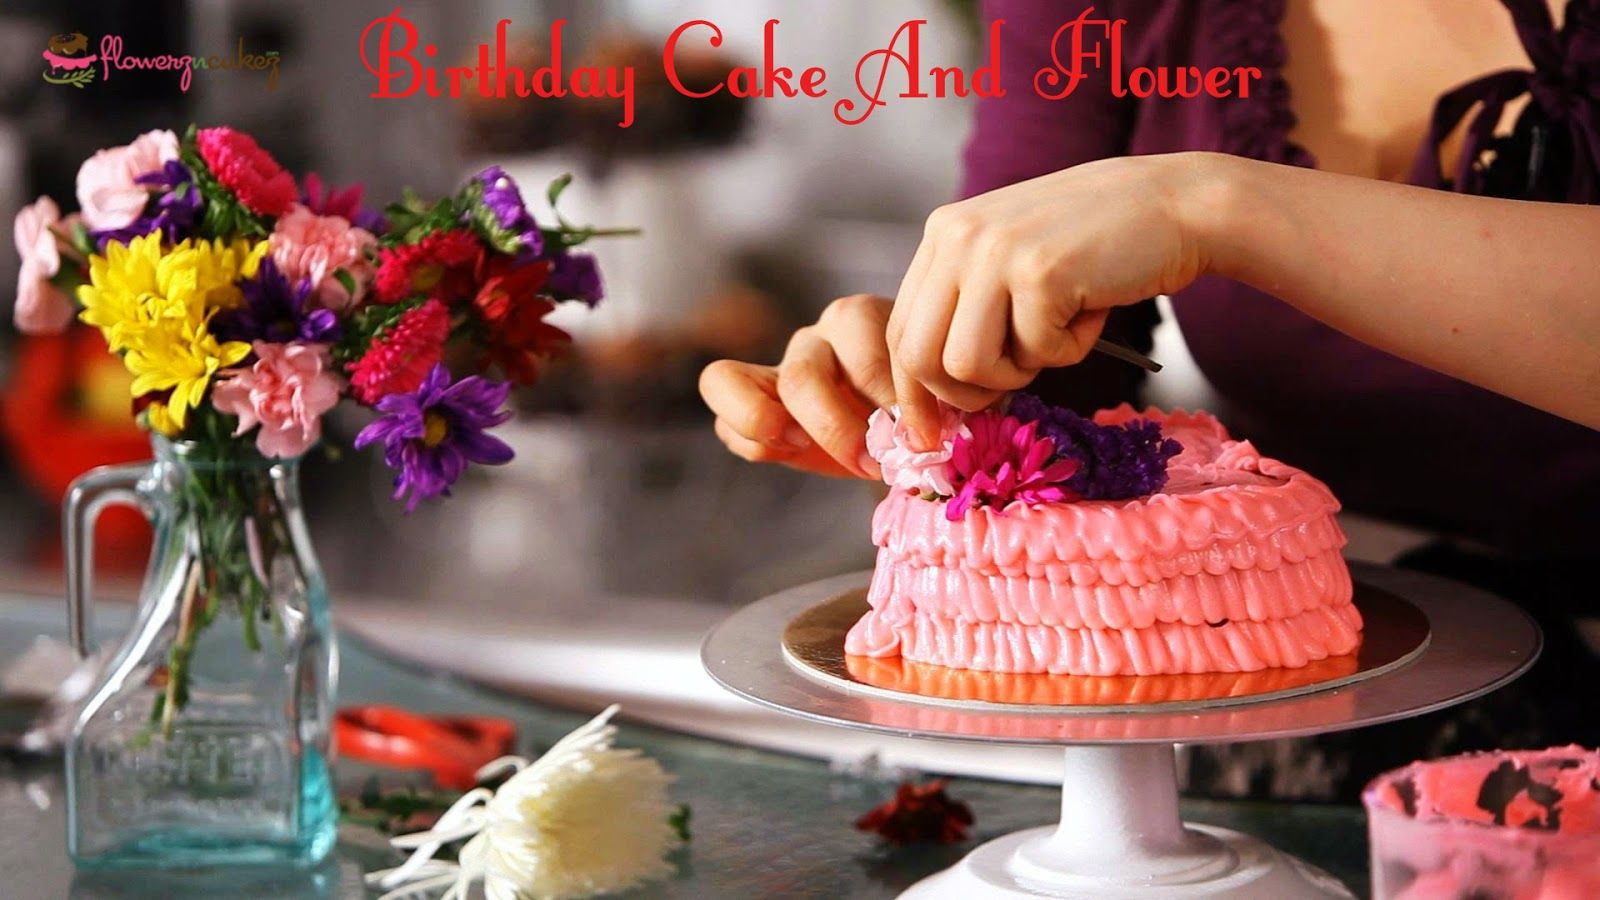 Purchasing Birthday Cakes And Flowers Within Your Budget Estimate